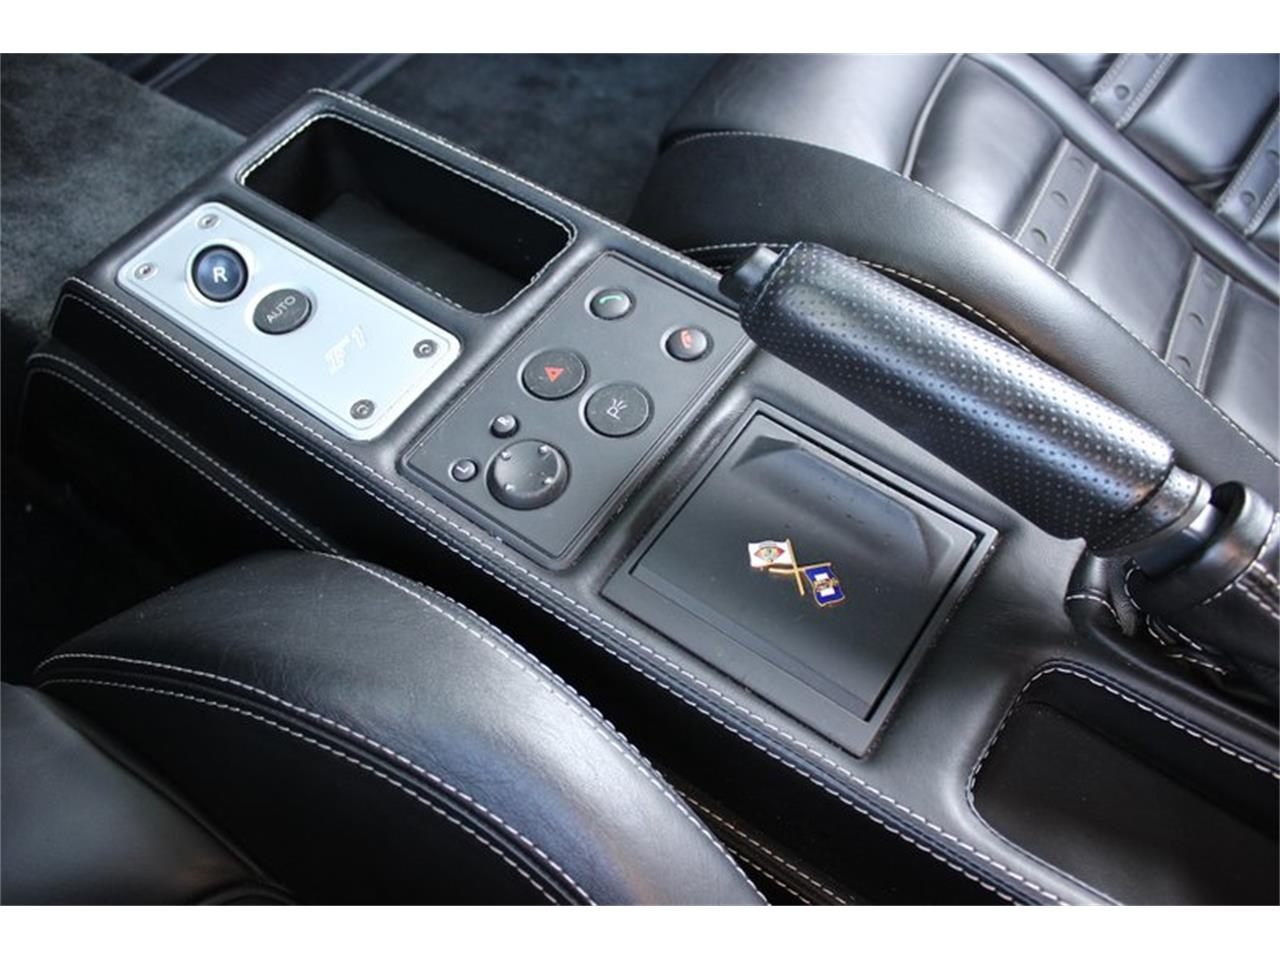 2005 Ferrari F430 for sale in San Carlos, CA – photo 37